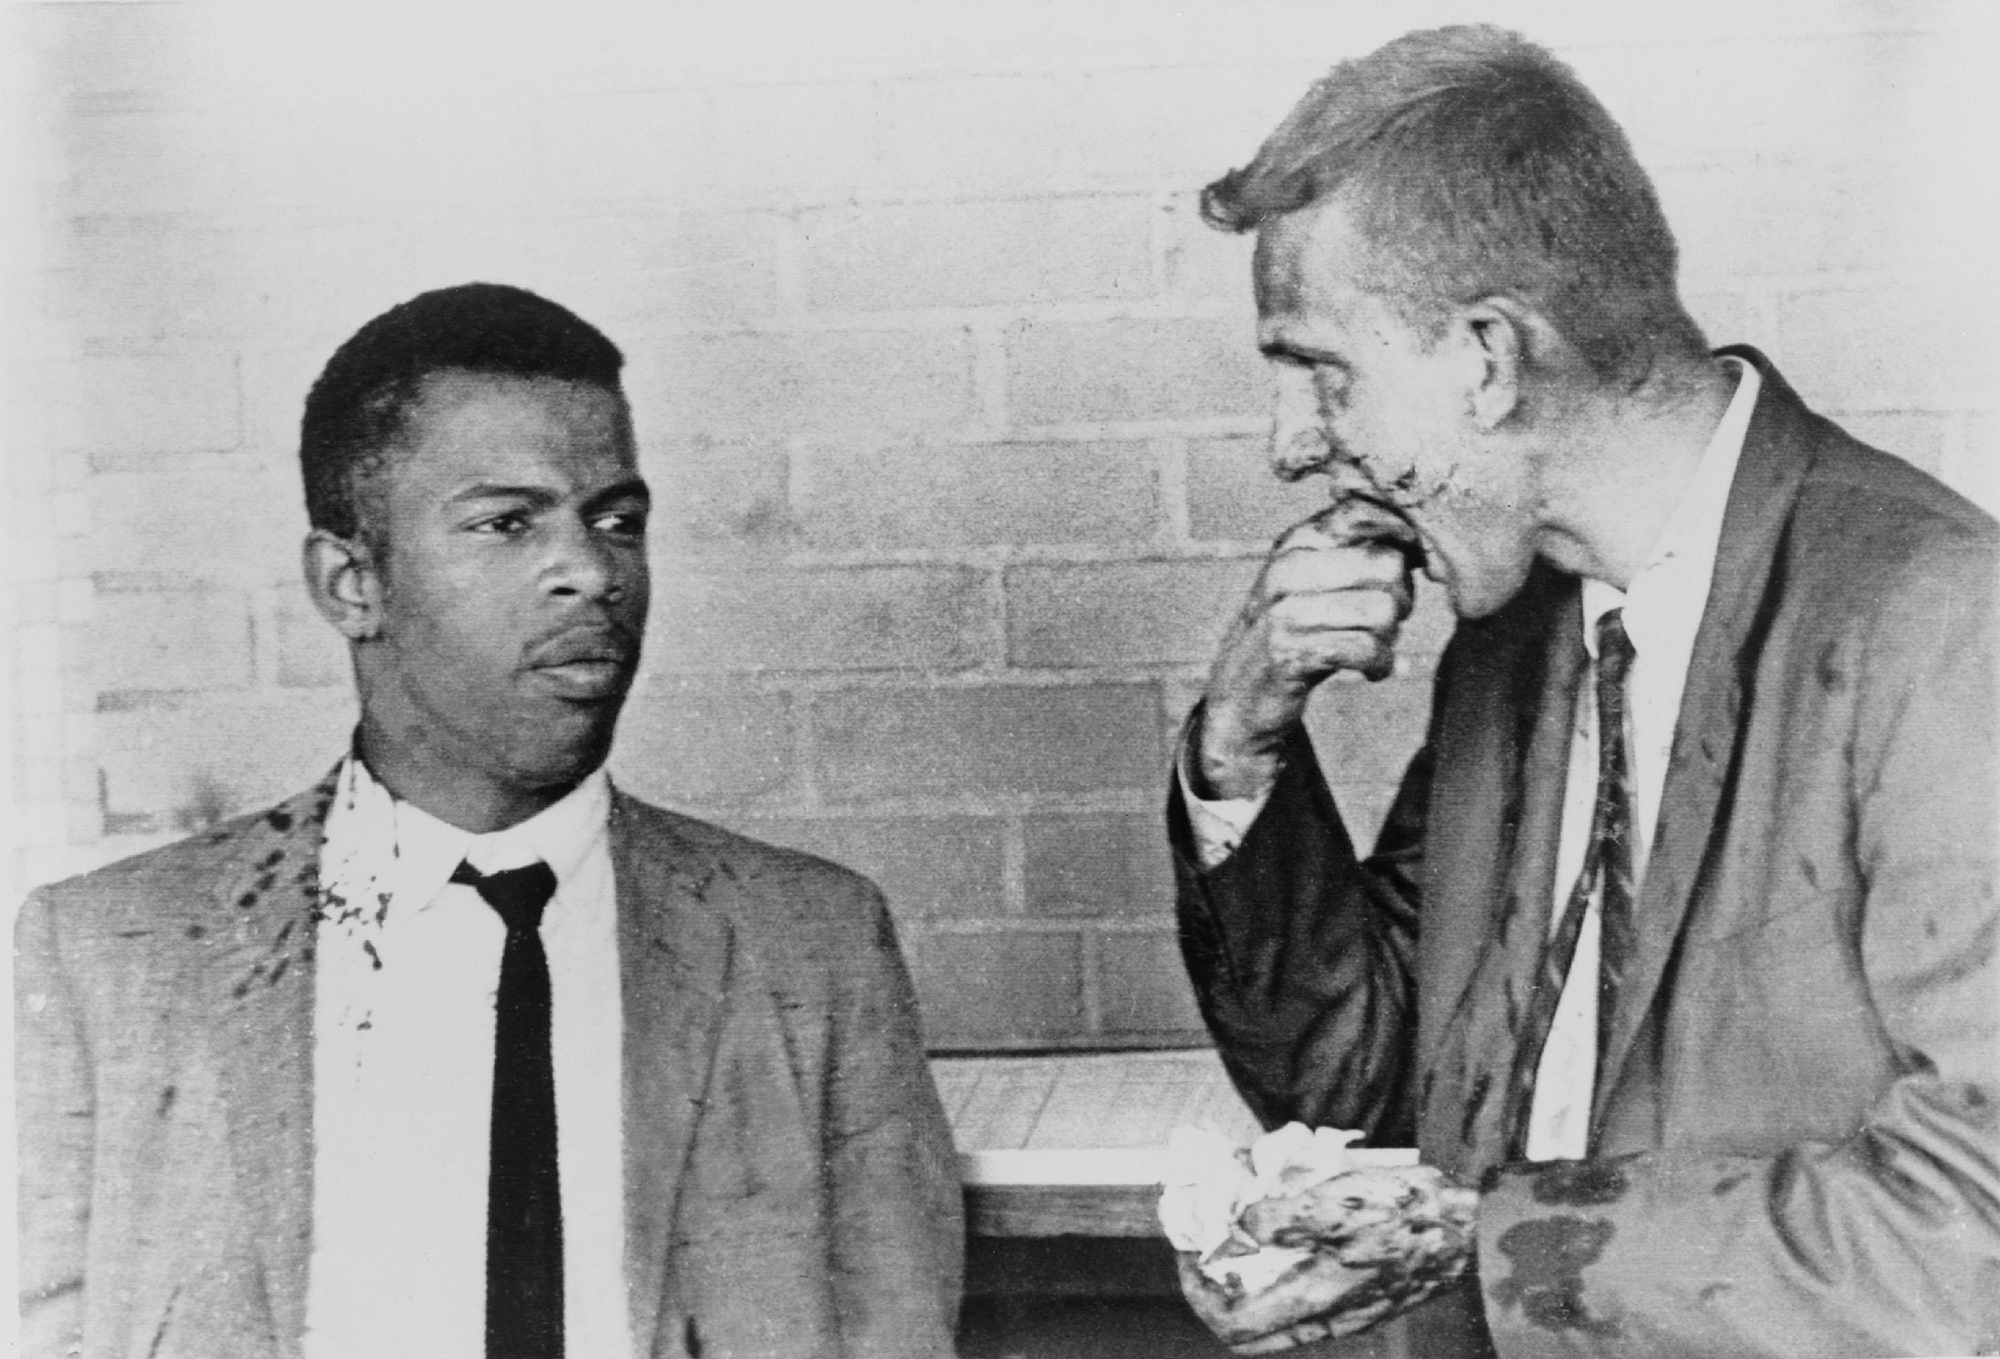 John Lewis and fellow Freedom Rider James Zwerg collect themselves after surviving a bloody attack at a bus station in Montgomery, Ala. in 1961.